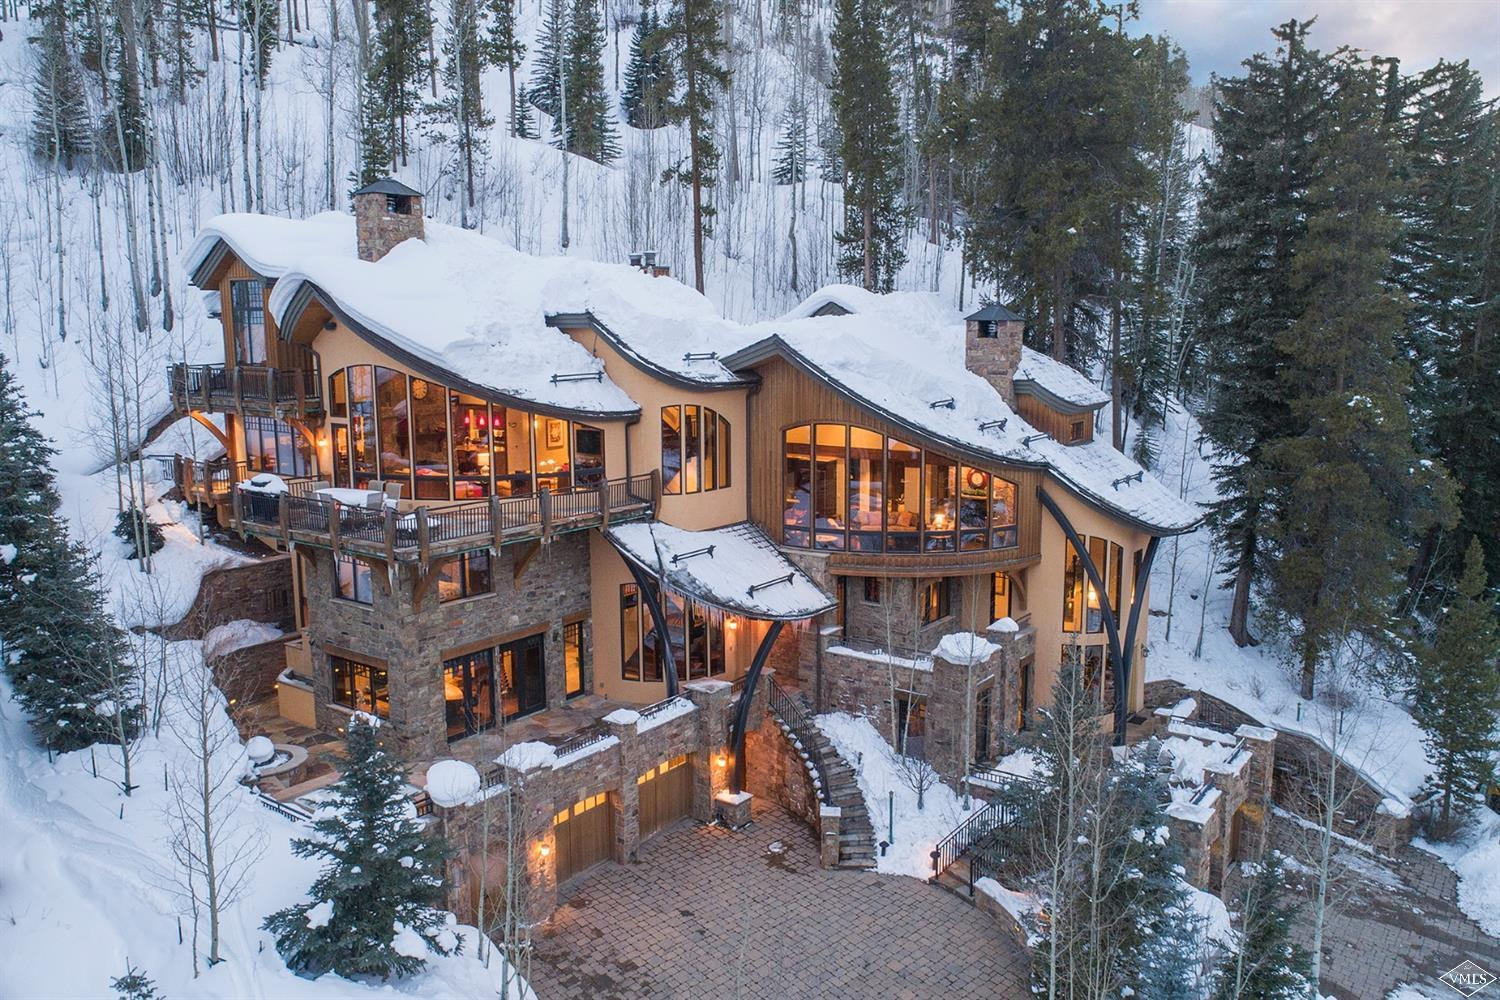 Located in the coveted Forest Road neighborhood, this home is steps away from the slopes, walking distance to Lionshead Village, and offers expansive views to the east looking towards Gore Range and Bald Mountain, generous natural light, and a high emphasis on privacy backing up to White River National Forest. 4-beds, 5-baths with elevator, vaulted ceilings in the living and master bedroom, and impressive views to the east. Both sides of the duplex are available for purchase.